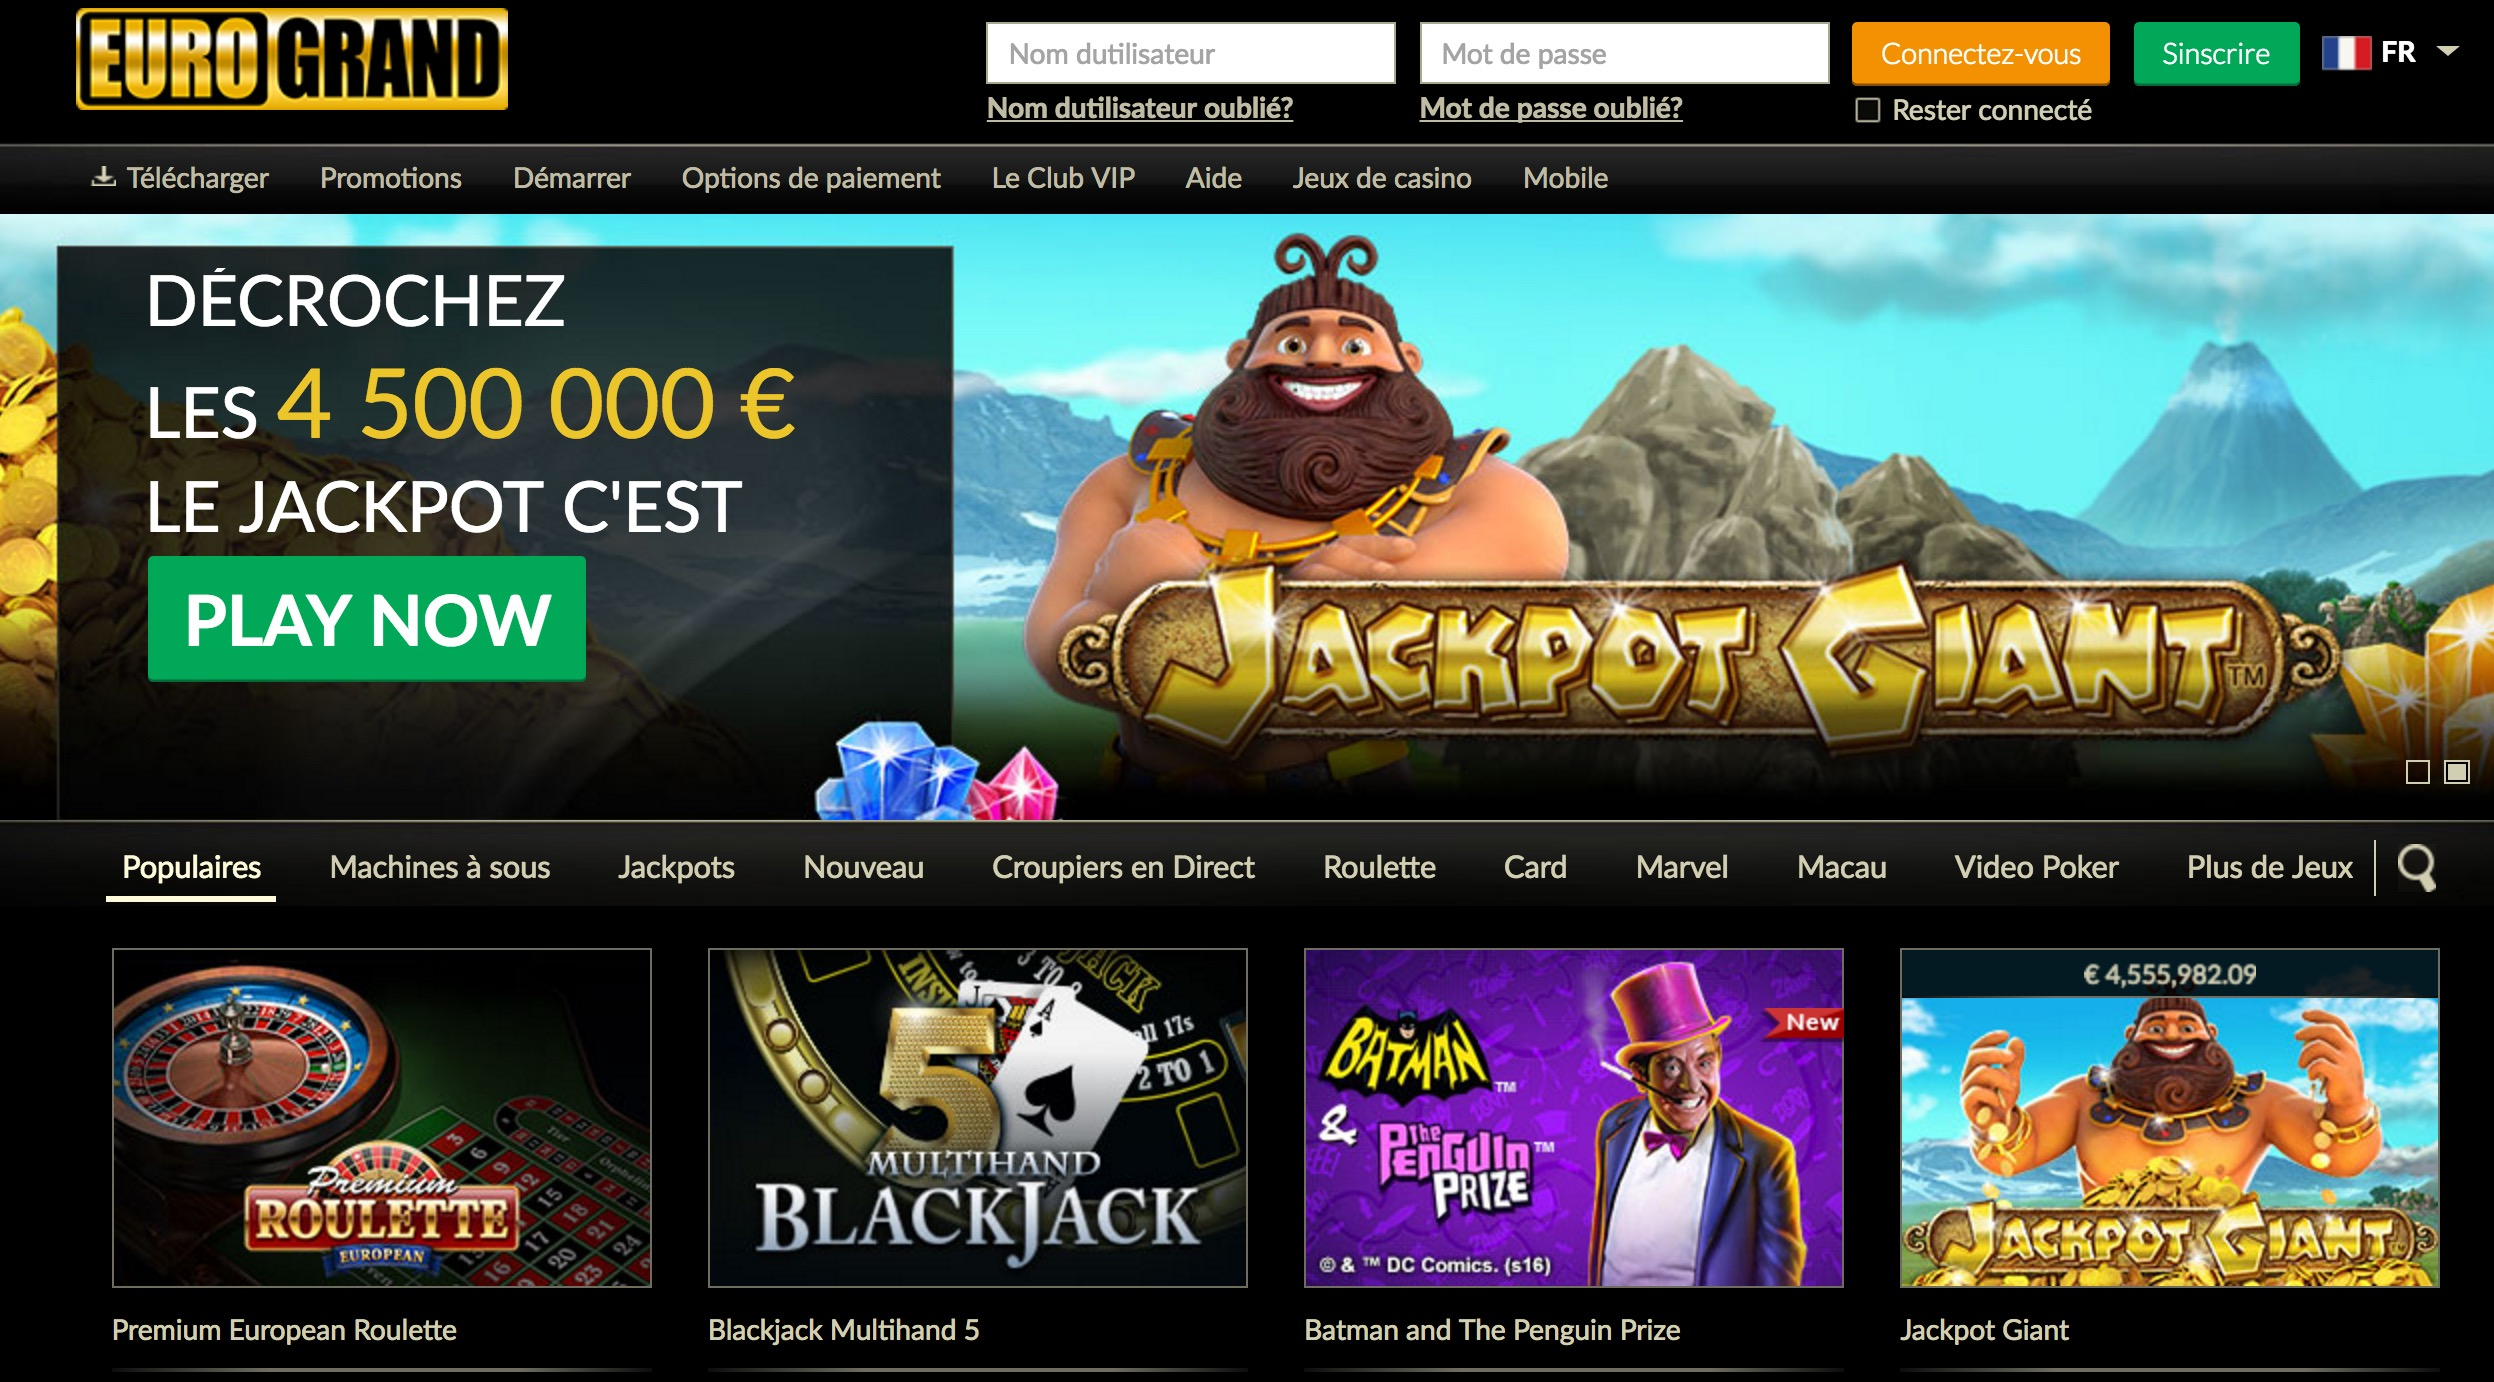 Eurogrand casino review : one of the best online casinos ?